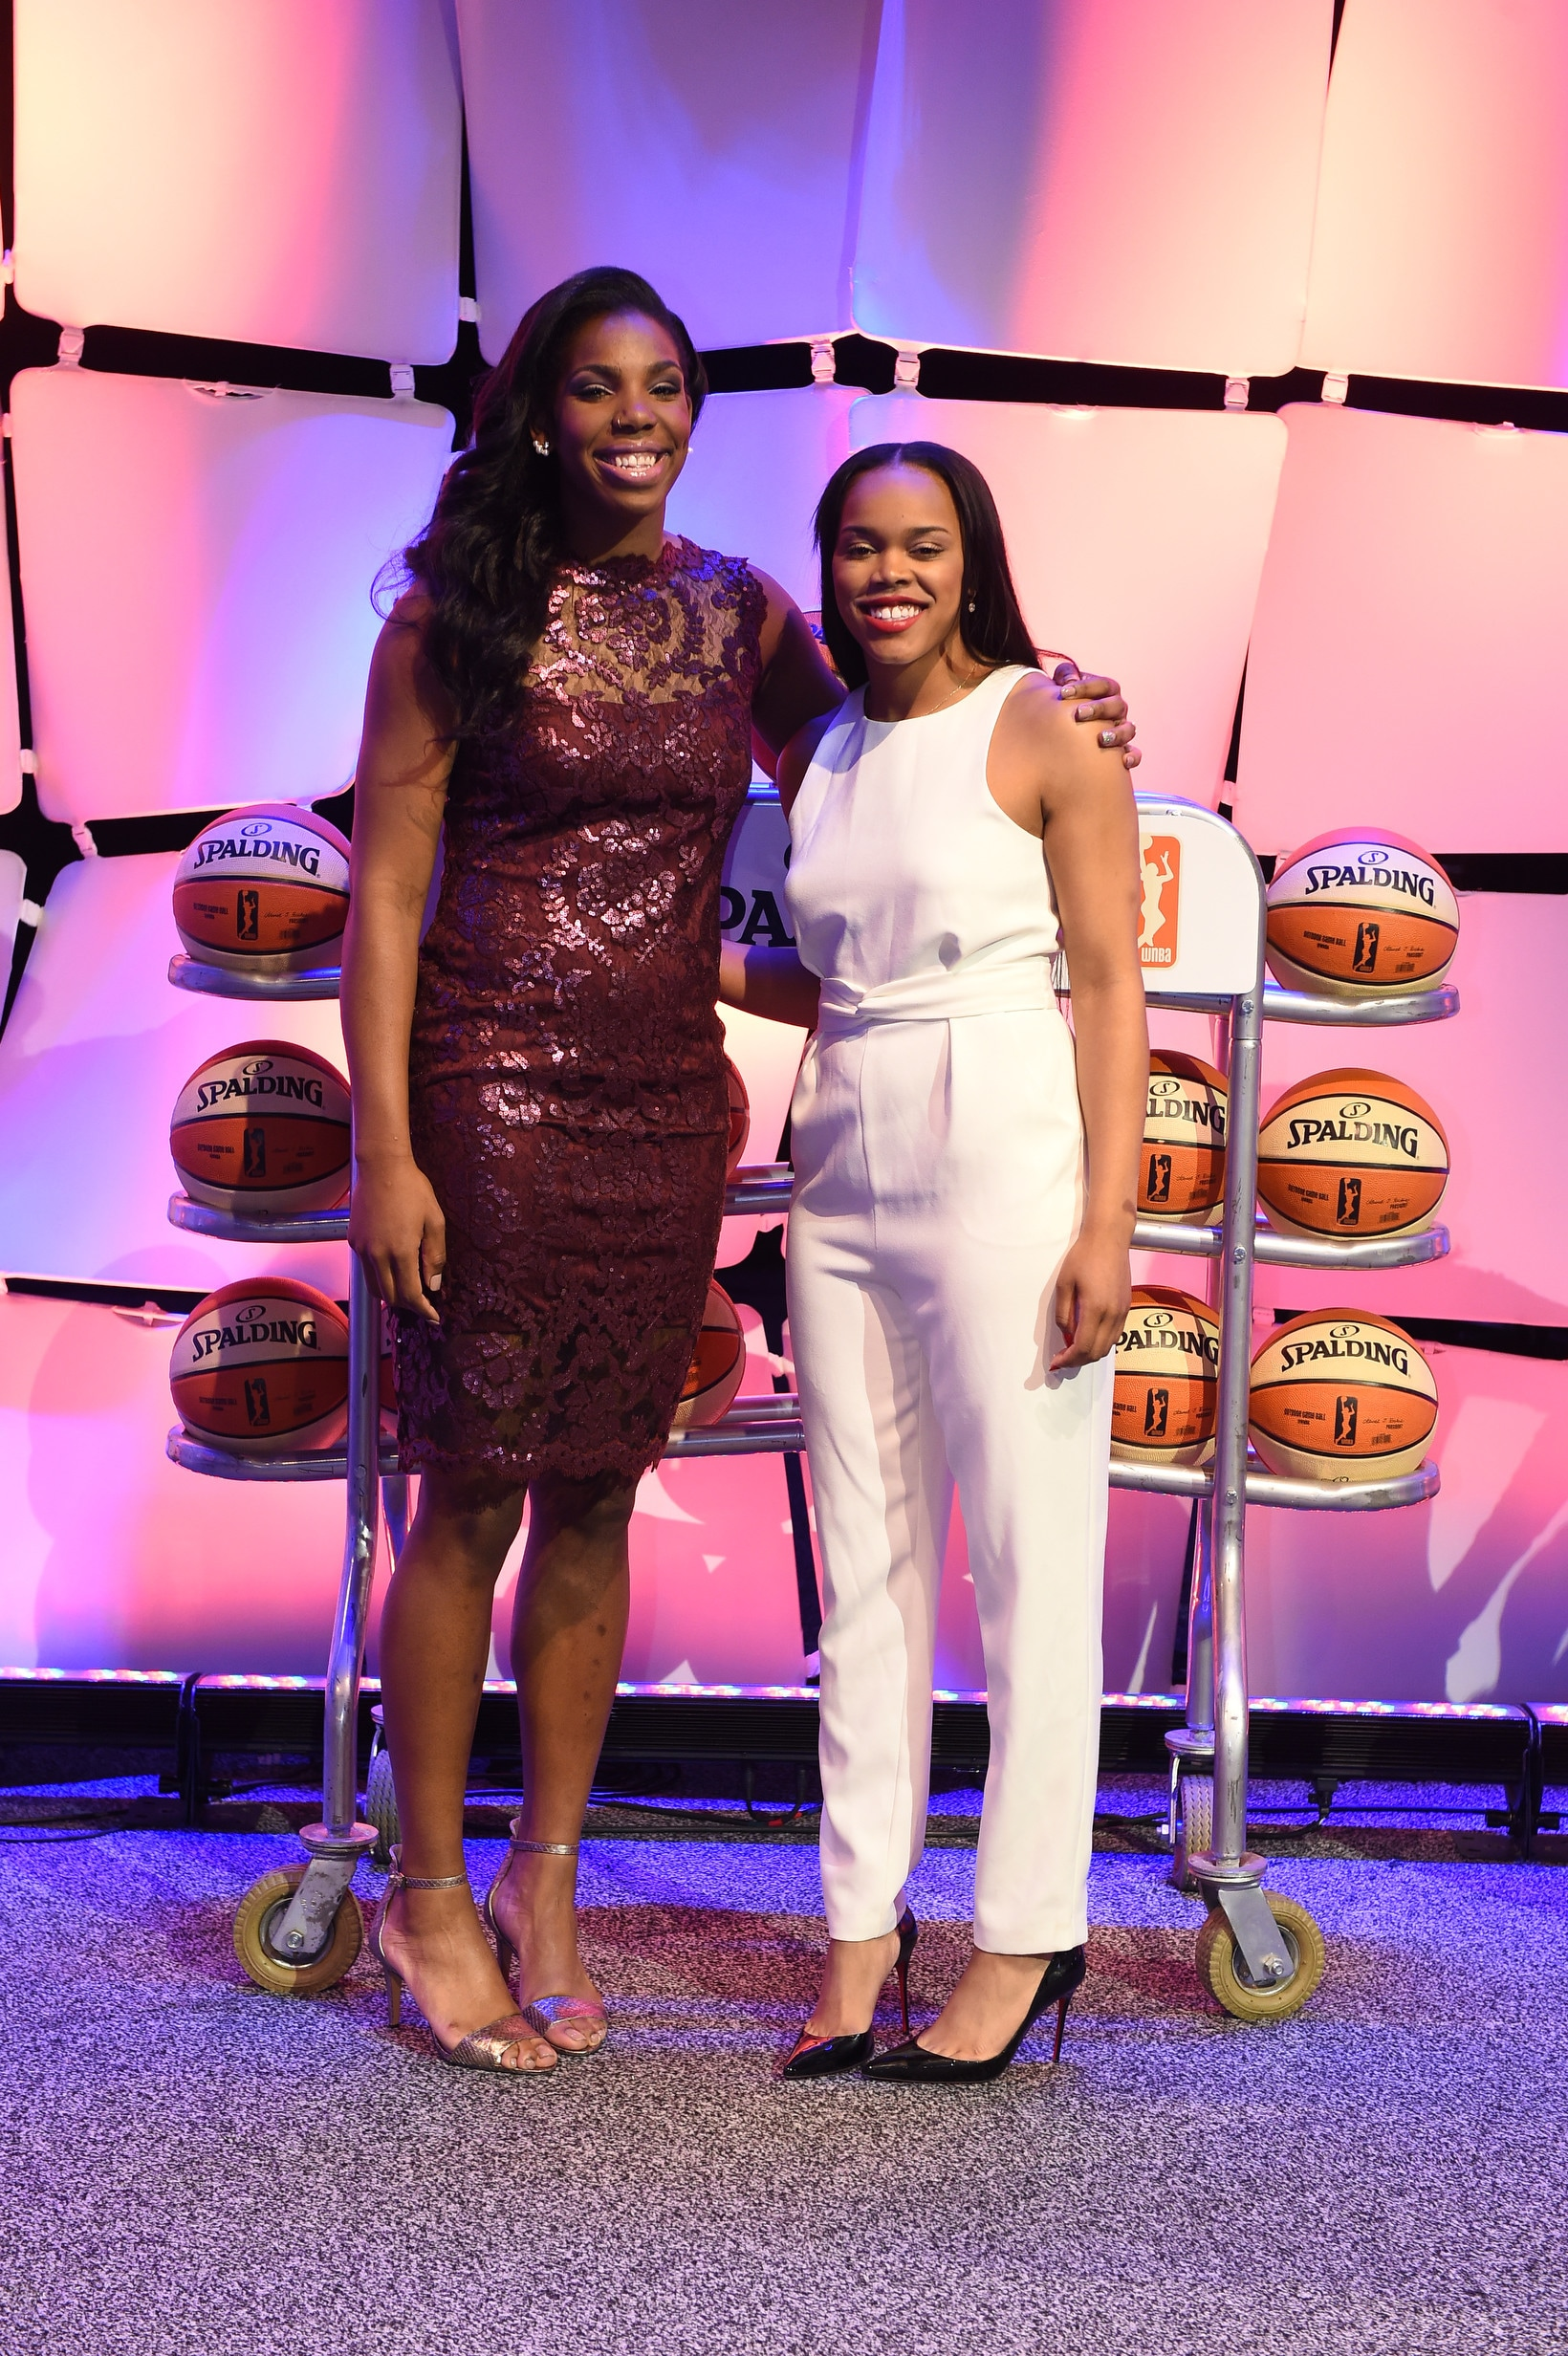 UNCASVILLE, CT - APRIL 16:  Reshanda Gray and Brittany Boyd pose for a photo during the 2015 WNBA Draft Presented By State Farm on April 16, 2015 at Mohegan Sun Arena in Uncasville, Connecticut.  NOTE TO USER: User expressly acknowledges and agrees that, by downloading and/or using this Photograph, user is consenting to the terms and conditions of the Getty Images License Agreement. Mandatory Copyright Notice: Copyright 2015 NBAE  (Photo by Brian Babineau/NBAE via Getty Images)